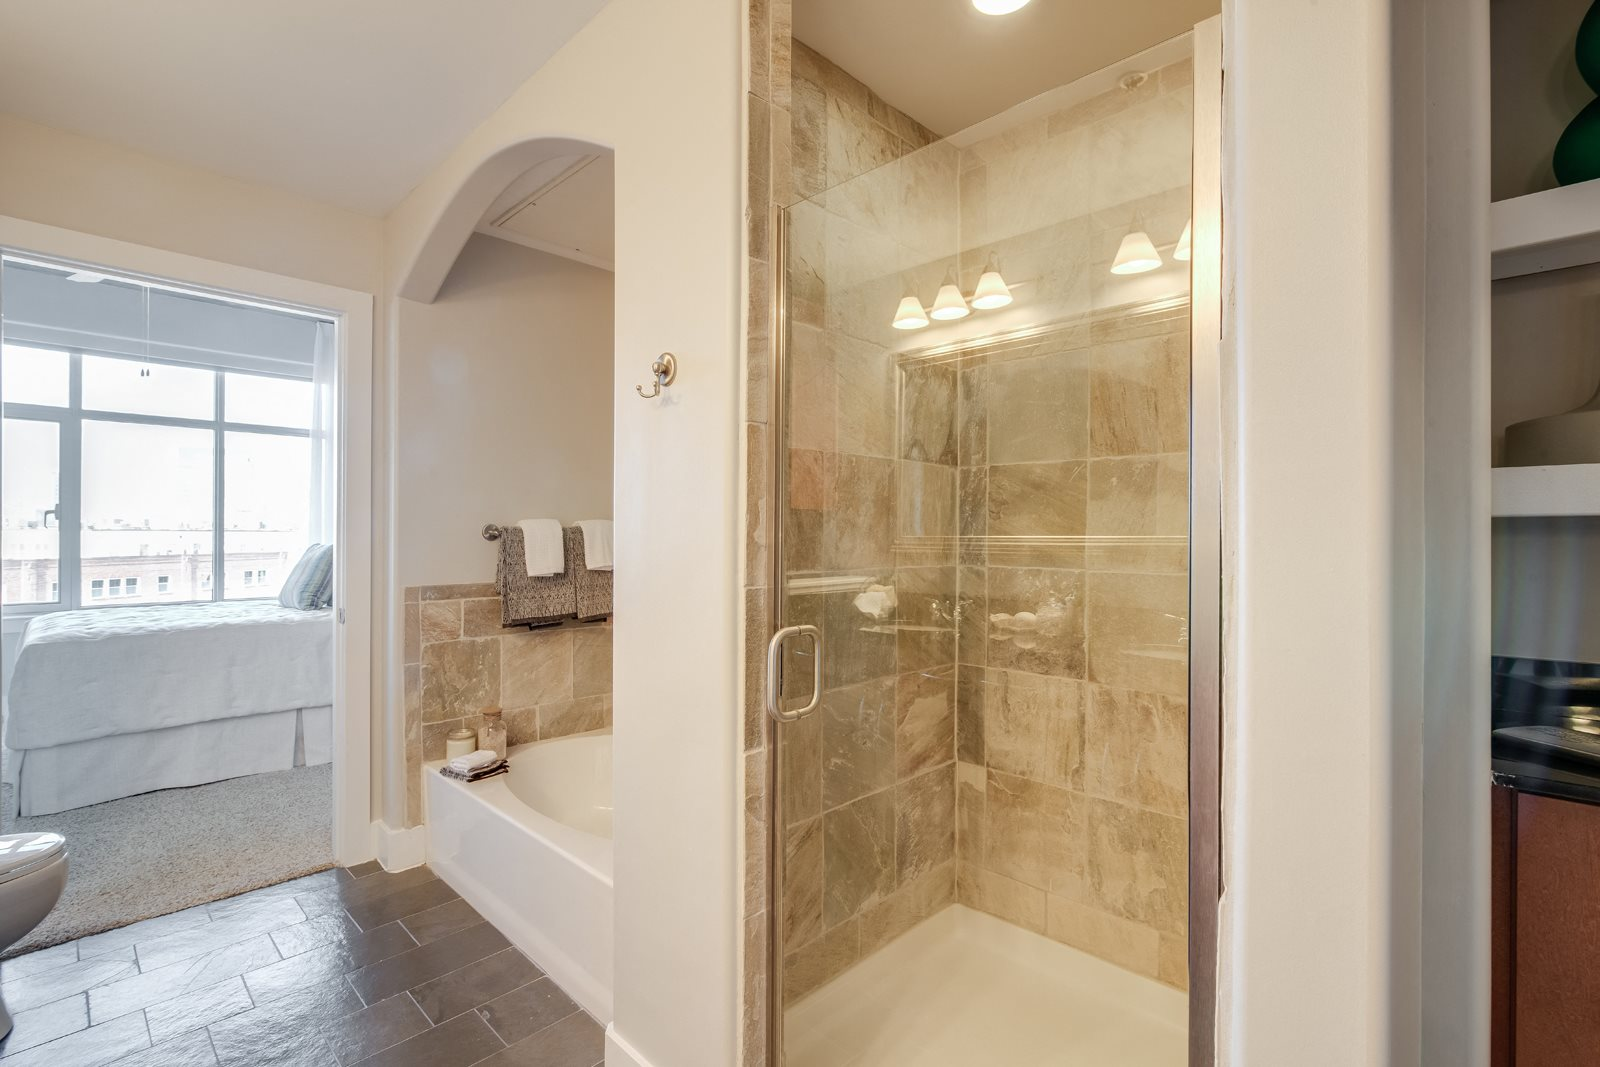 Frameless Glass Stand-Up Shower at Crescent at Fells Point by Windsor, 21231, MD